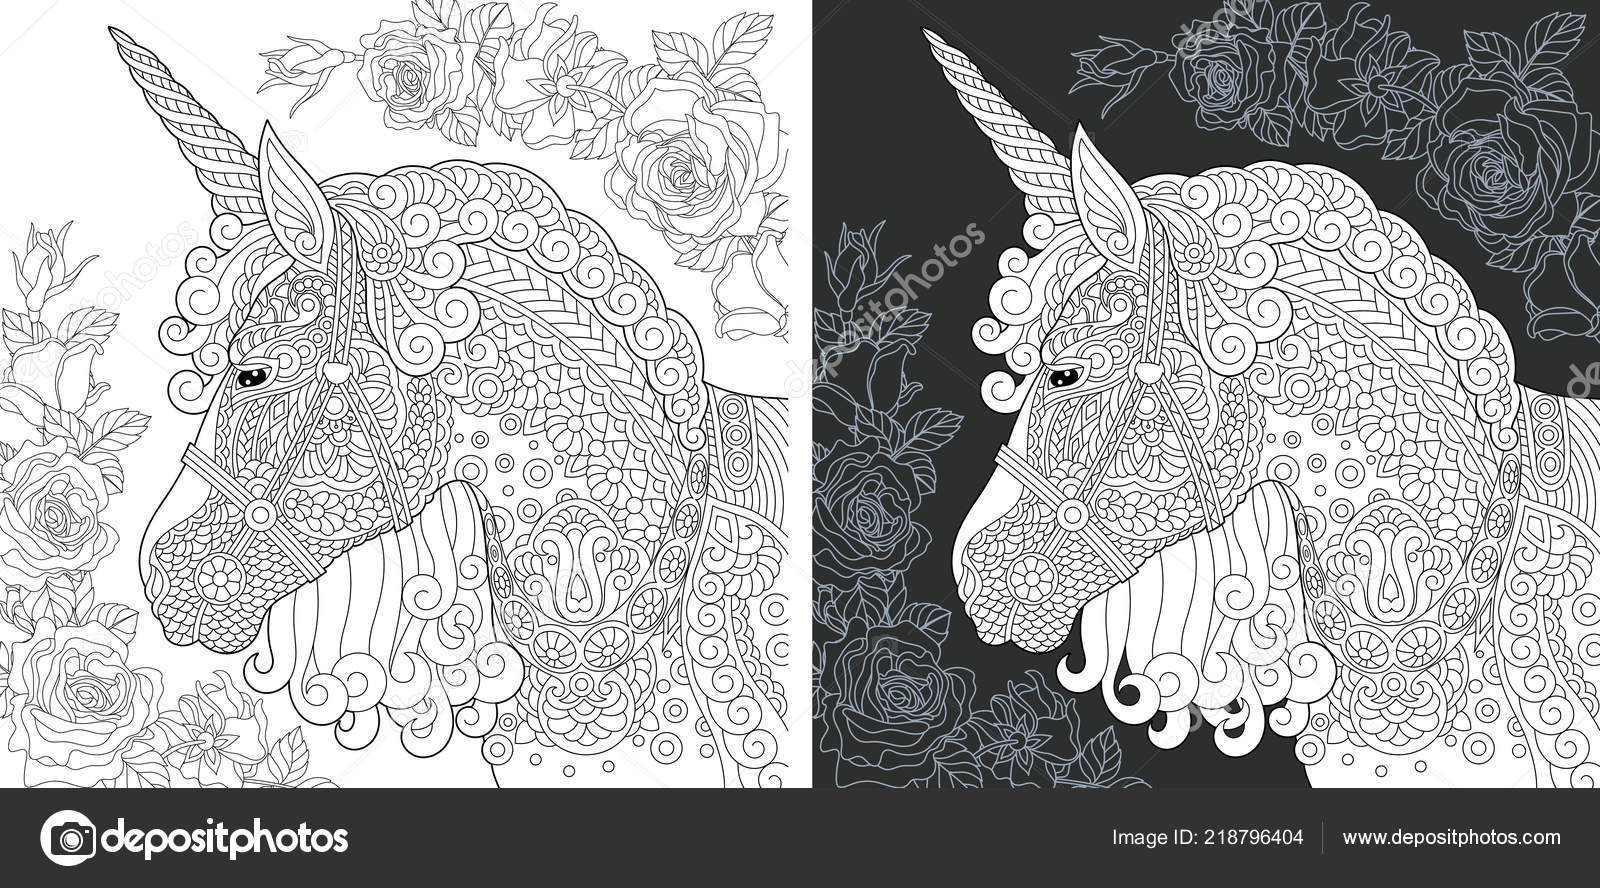 Https Cz Depositphotos Com 218796404 Stock Illustration Unicorn Coloring Page Coloring Book Html